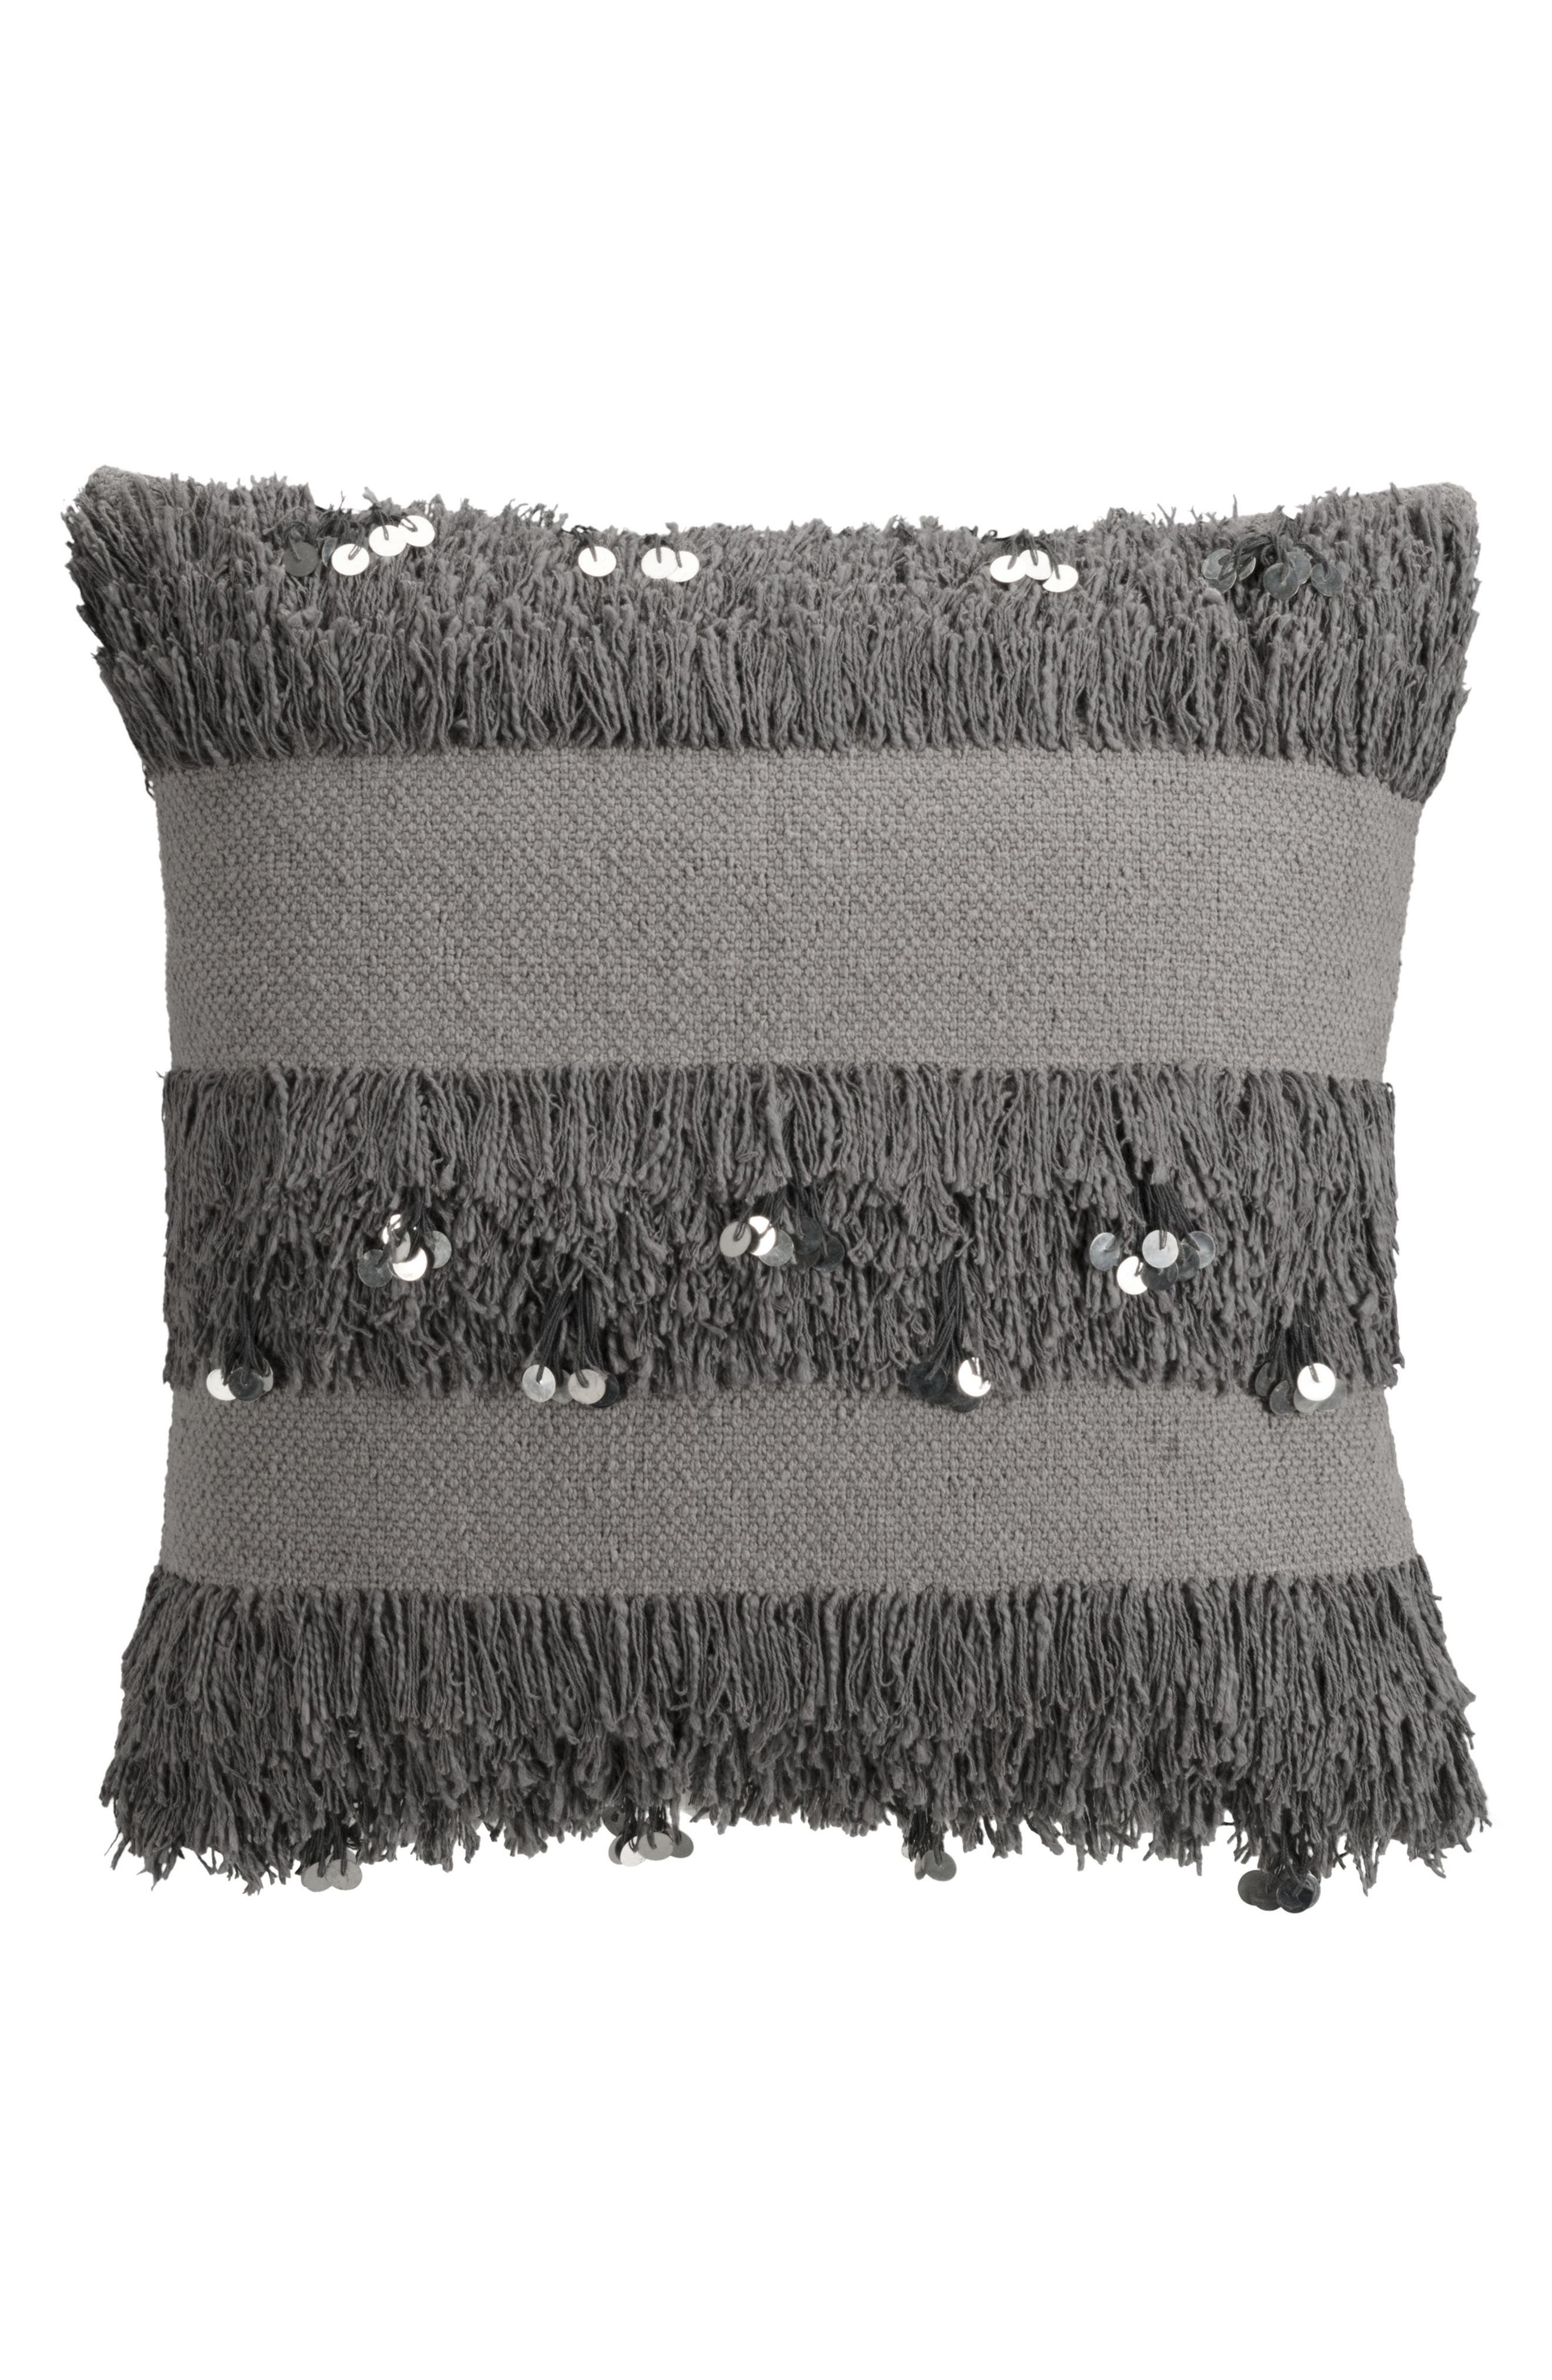 Main Image - cupcakes & cashmere Sequin Fringe Pillow